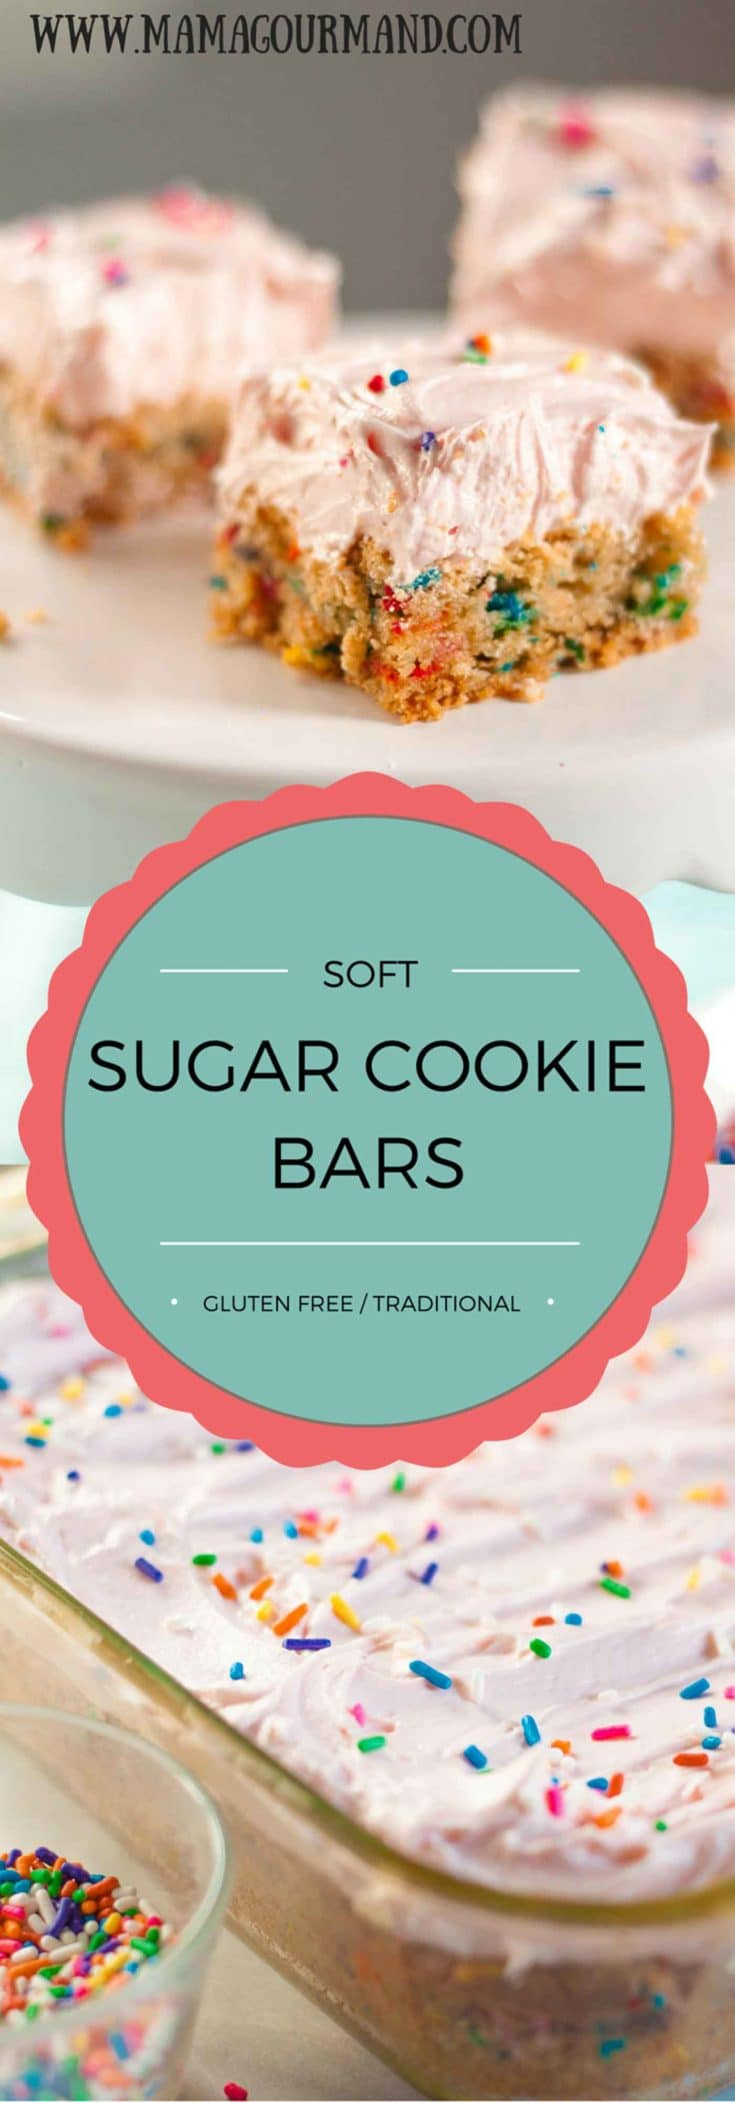 This soft sugar cookie bar recipe is a dessert lover's dream come true. They are hands down the best bar cookie recipe out there, and everyone will be begging you for the recipe. https://www.mamagourmand.com